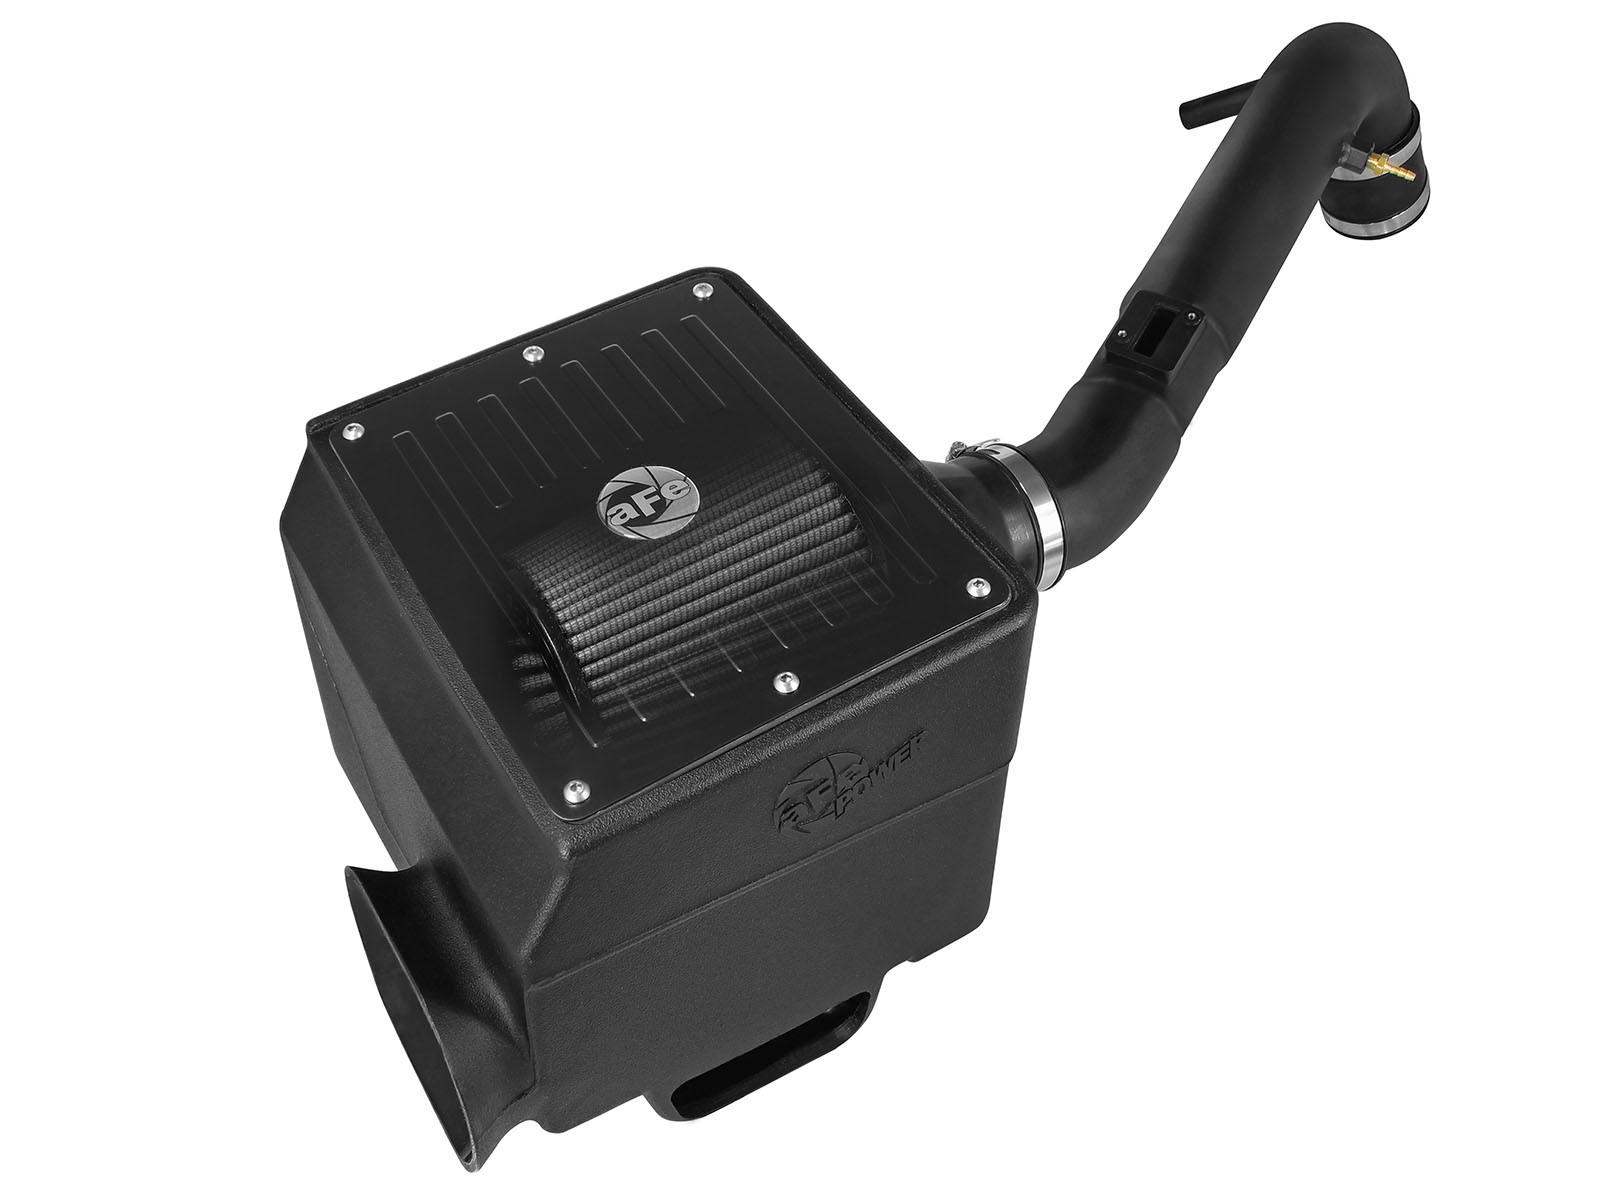 aFe POWER 51-82722 Magnum FORCE Stage-2 Si Pro DRY S Cold Air Intake System